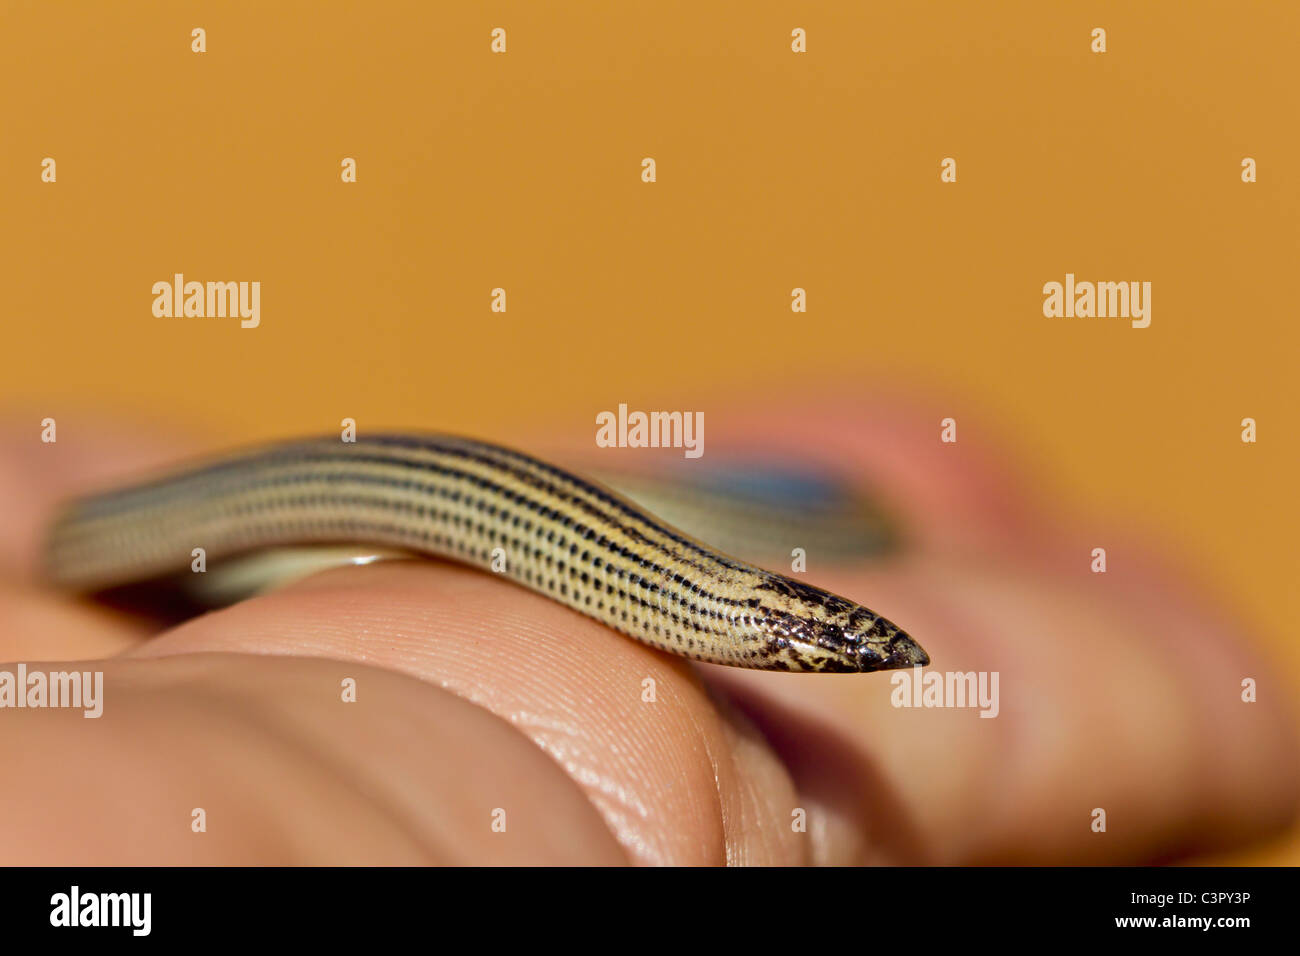 Africa, Namibia, Legless lizard in human hand - Stock Image